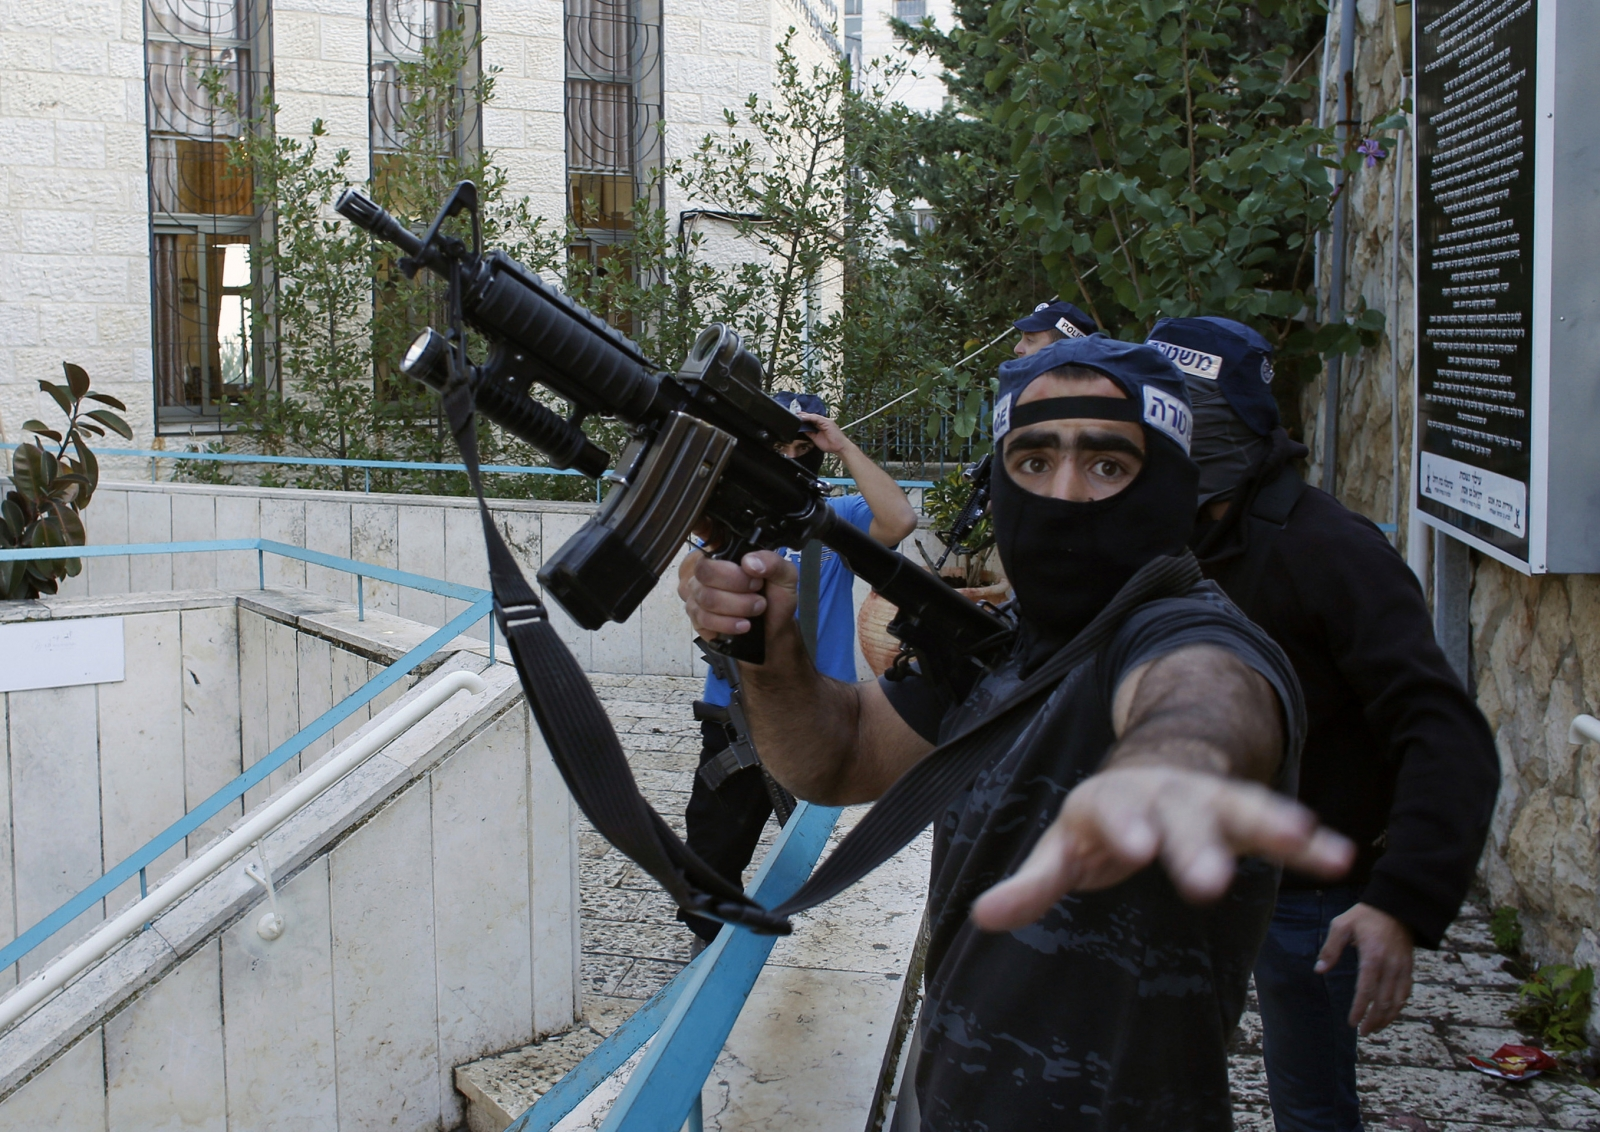 An Israeli police officer near the scene of an attack at a Jerusalem synagogue